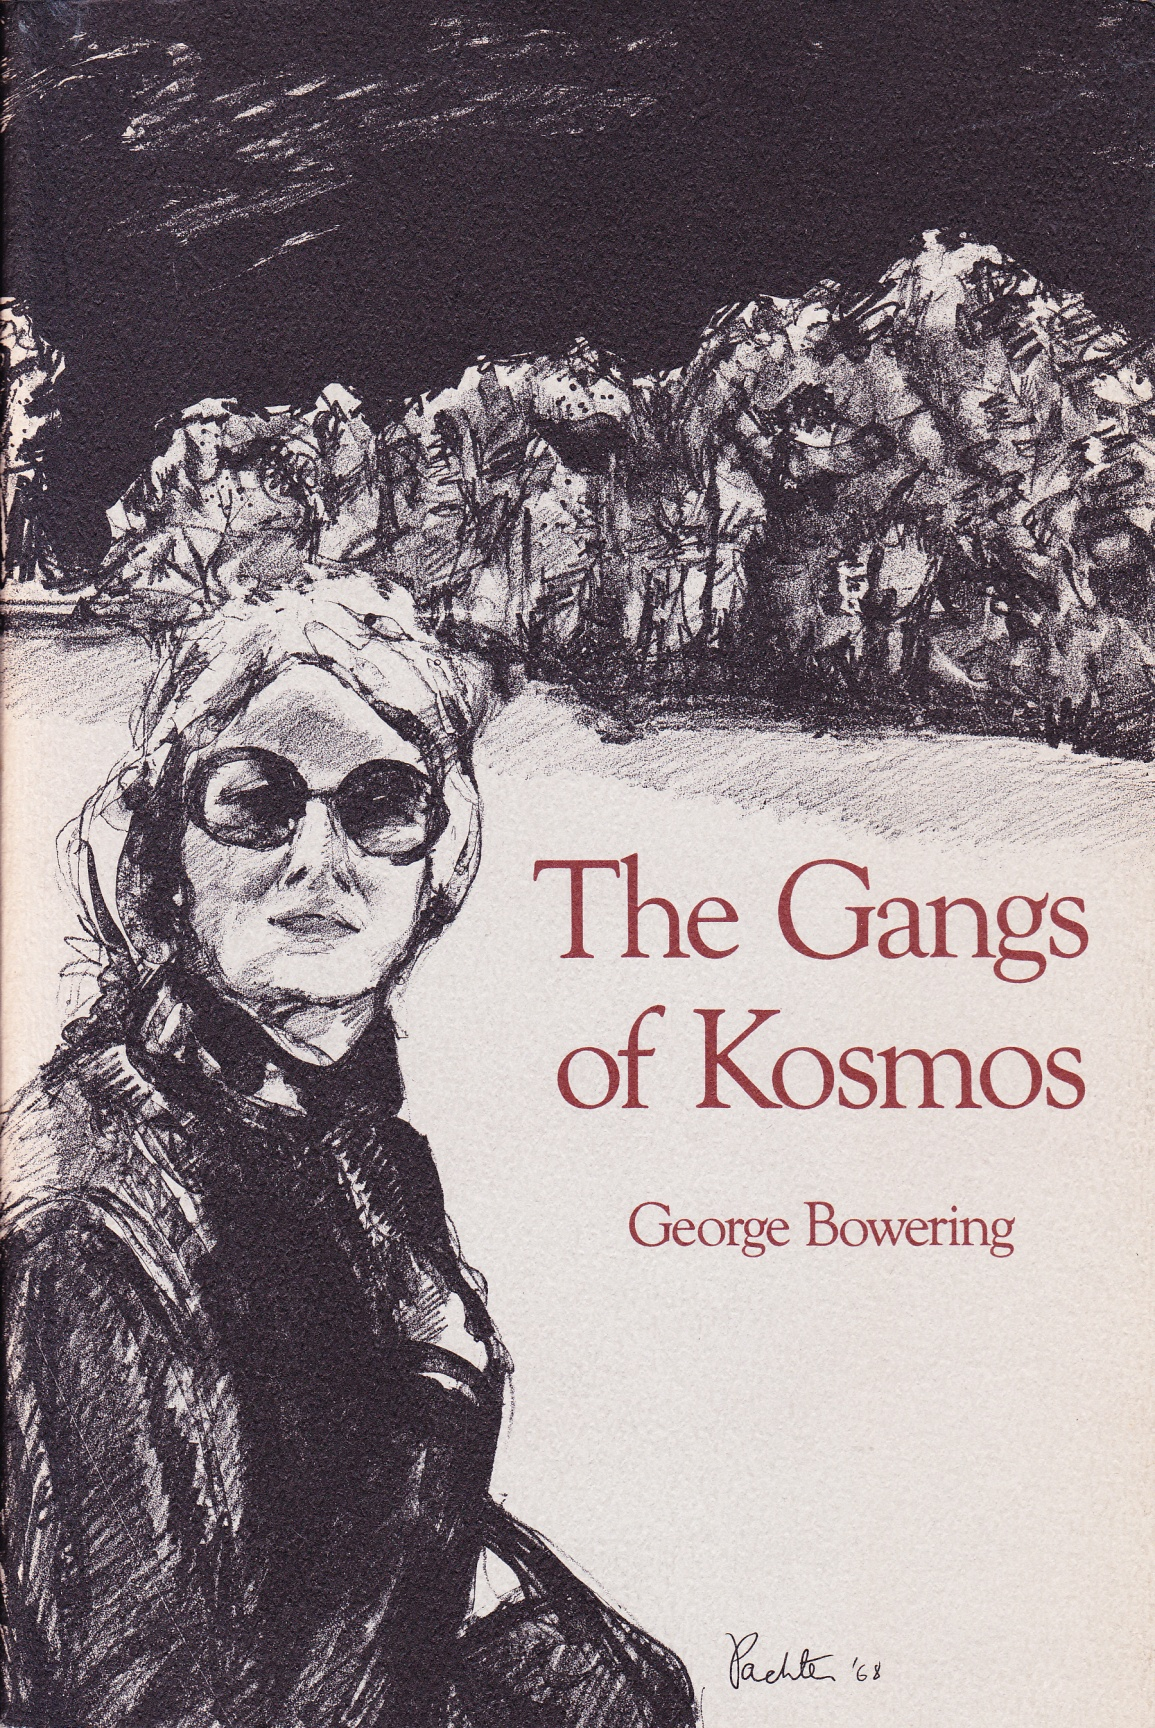 C:\Users\Robert\Documents\CARTOONING ILLUSTRATION ANIMATION\IMAGE BY CARTOONIST\P\PACHTER Charles. Gangs of Kosmos, 1969, fc.jpg